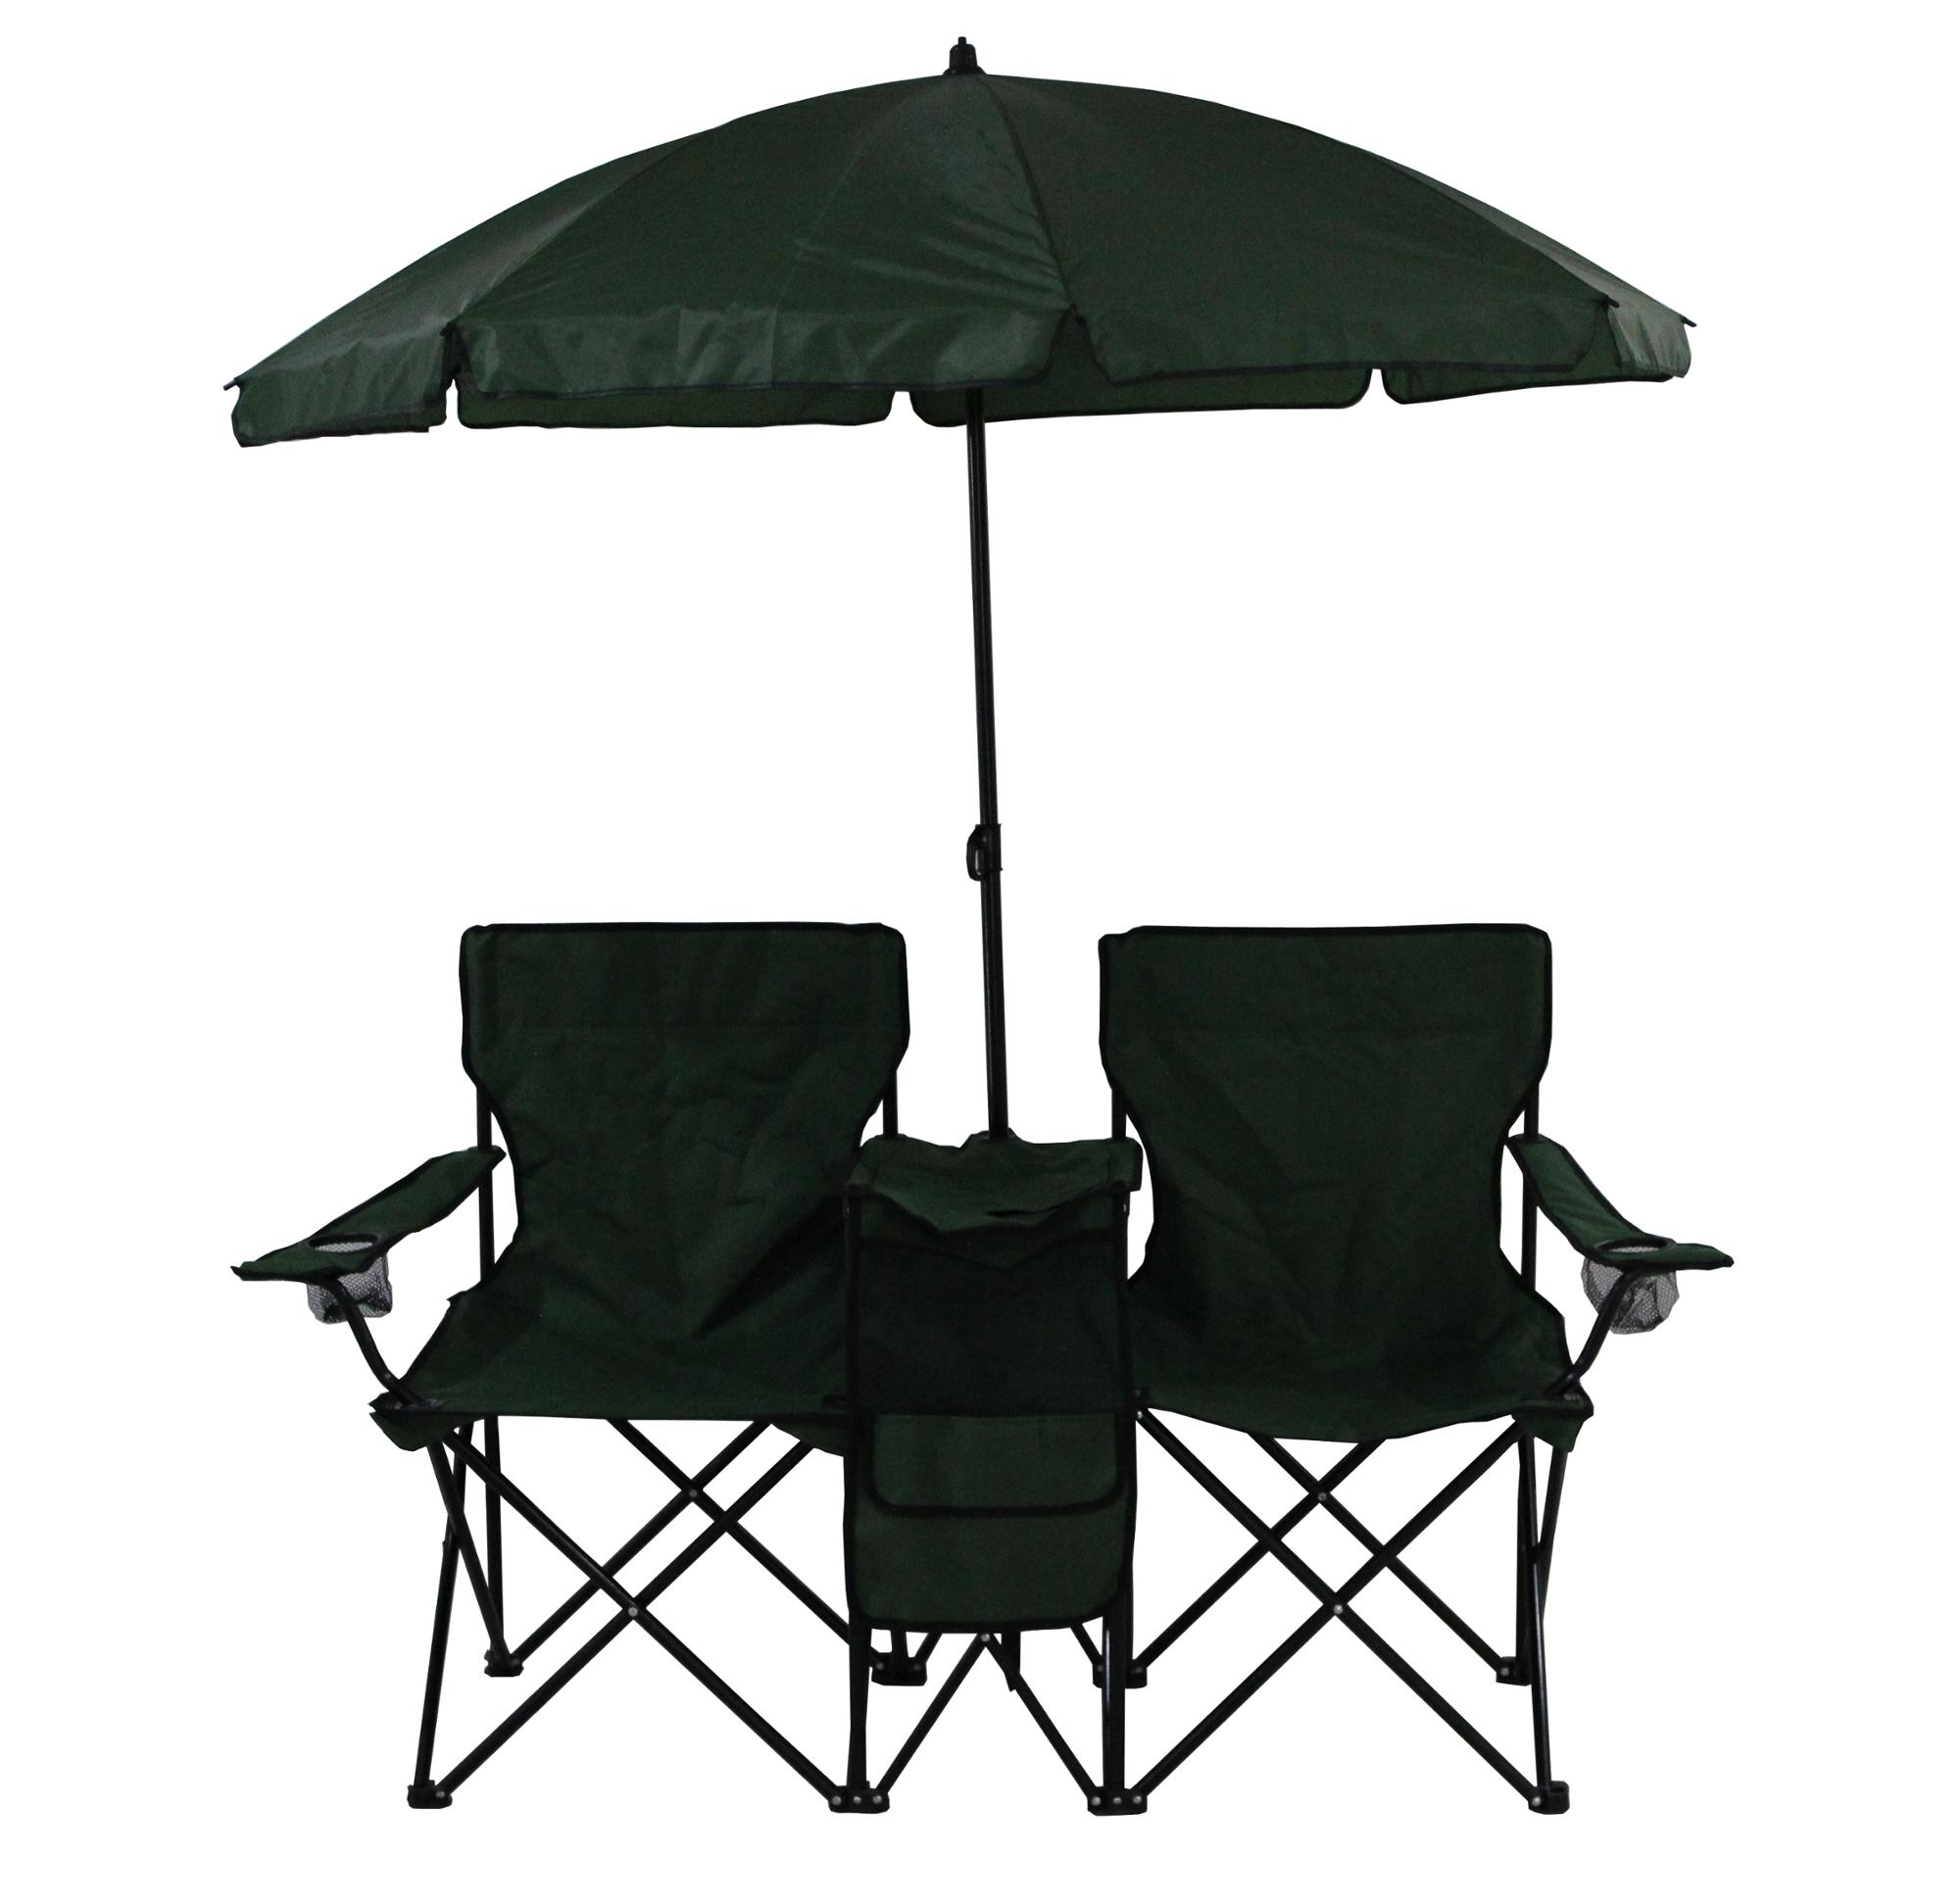 Double Seat Camping Chair With Umbrella Outdoor Folding Beach